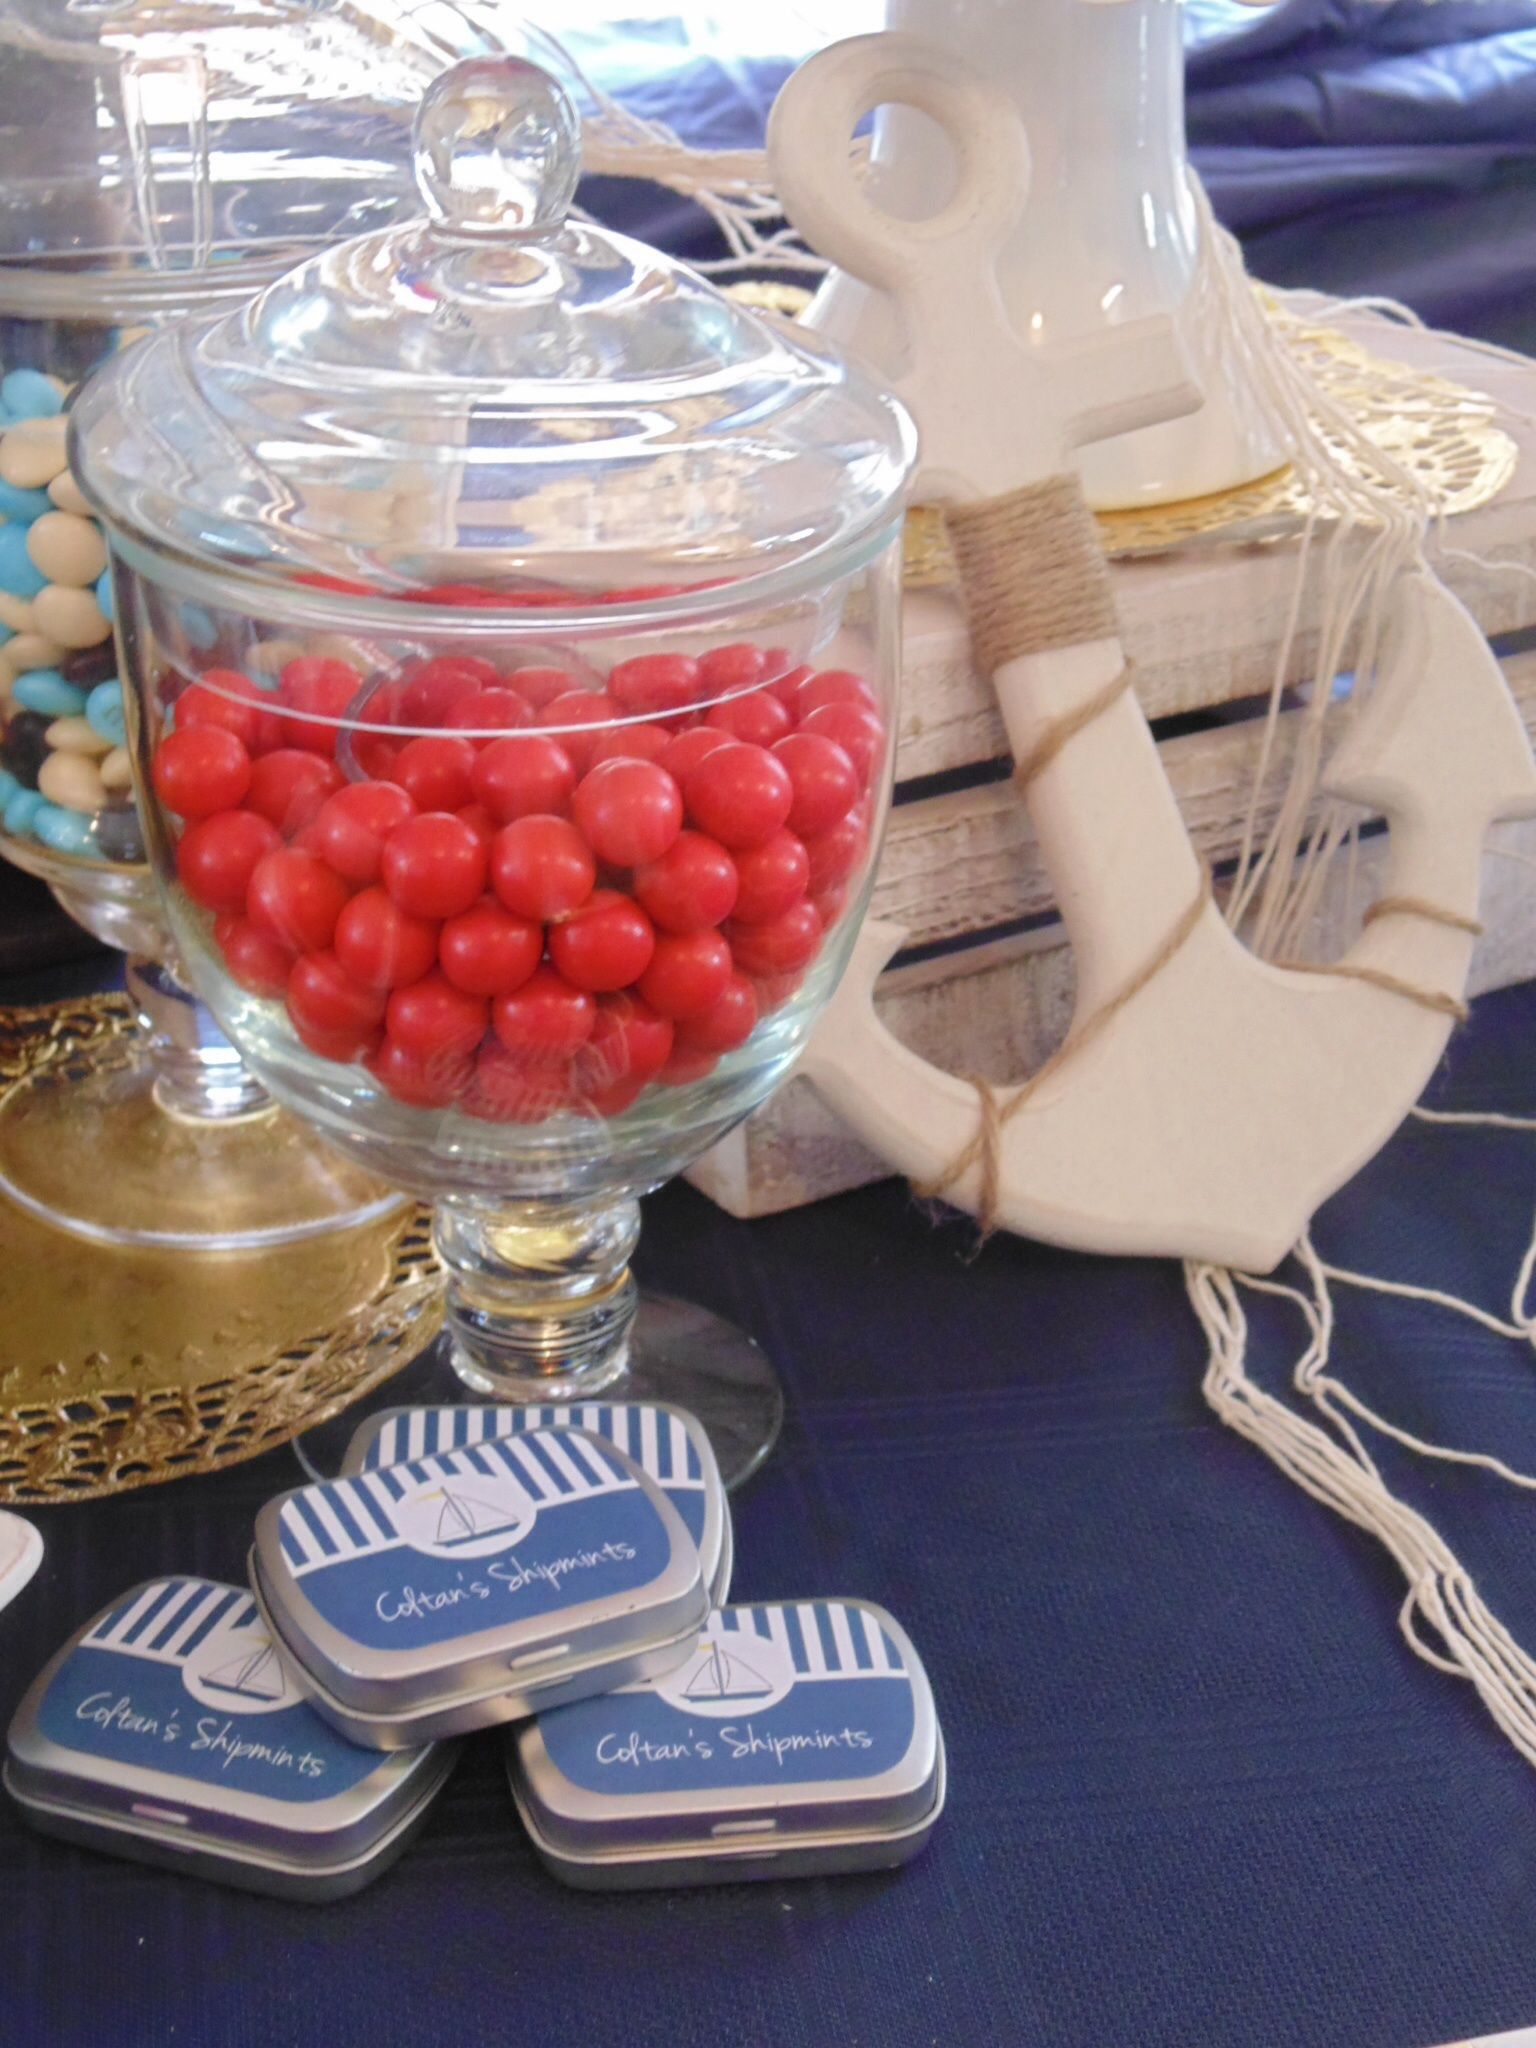 Mint tin favours for nautical party and Jaffa for a pop of red